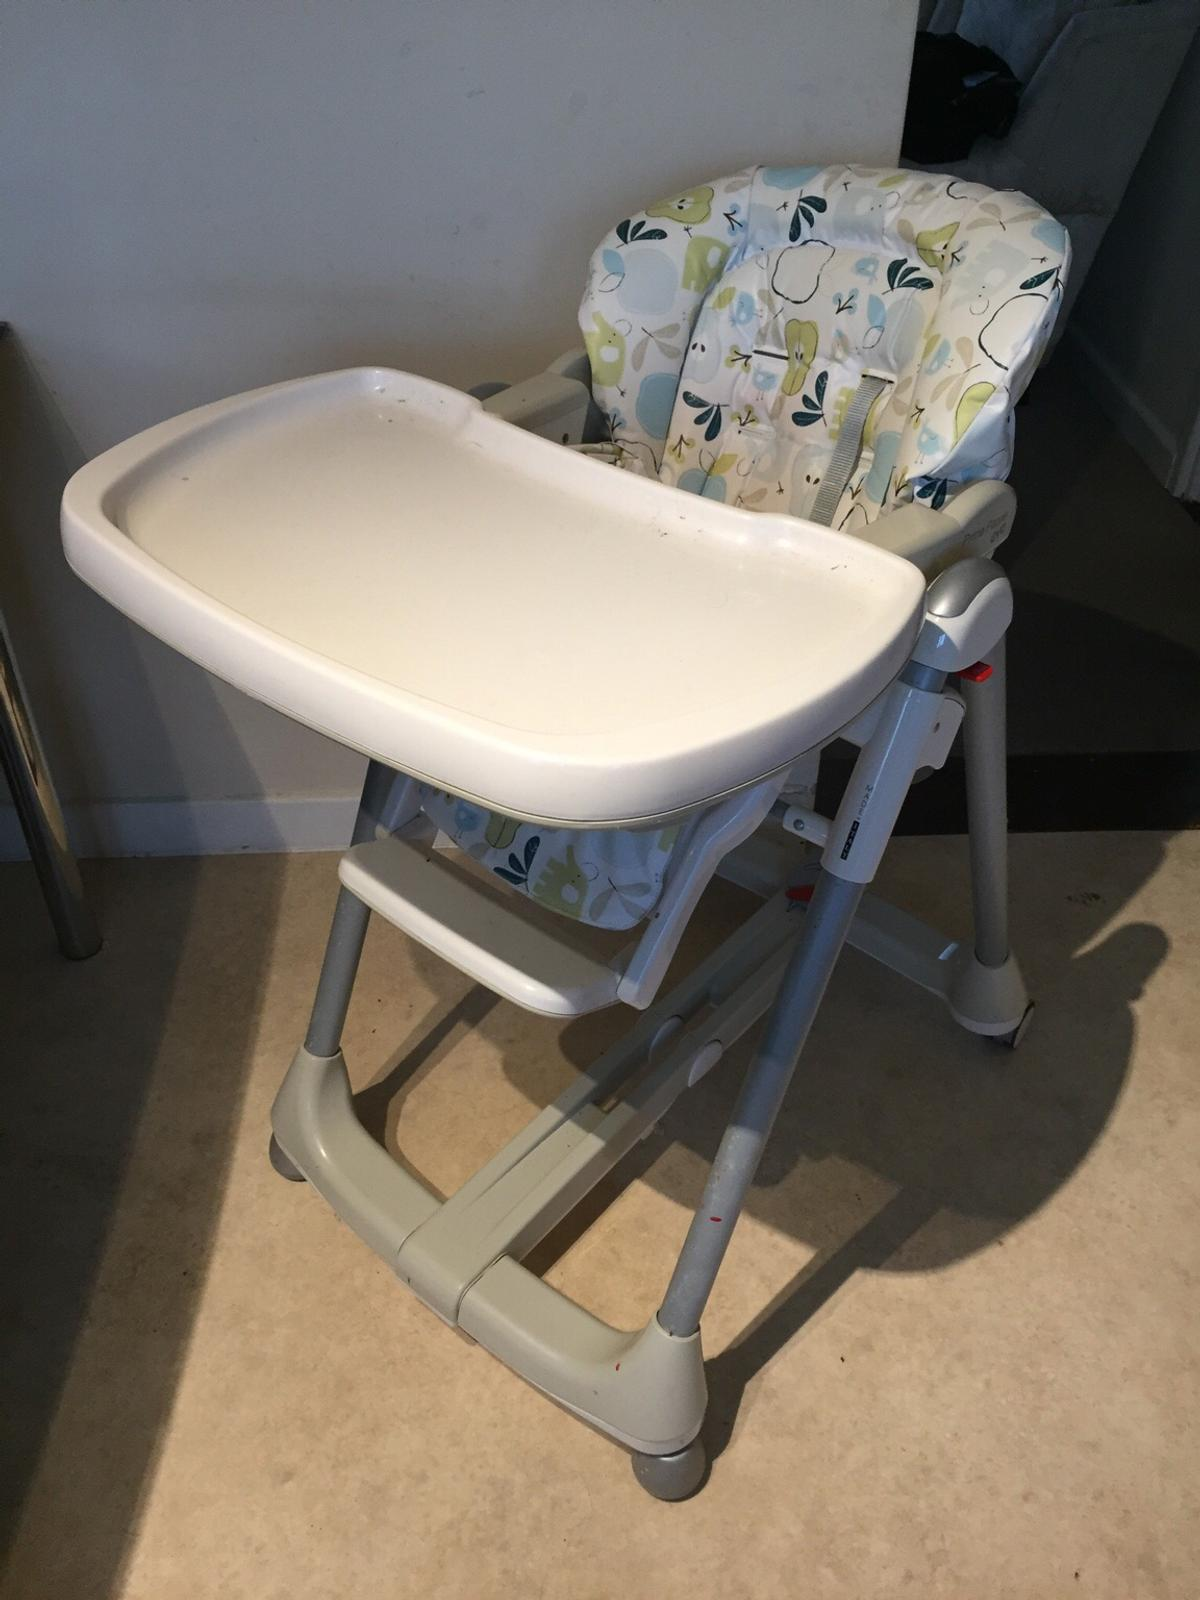 Remarkable Prima Pappa Evo High Chair Bralicious Painted Fabric Chair Ideas Braliciousco